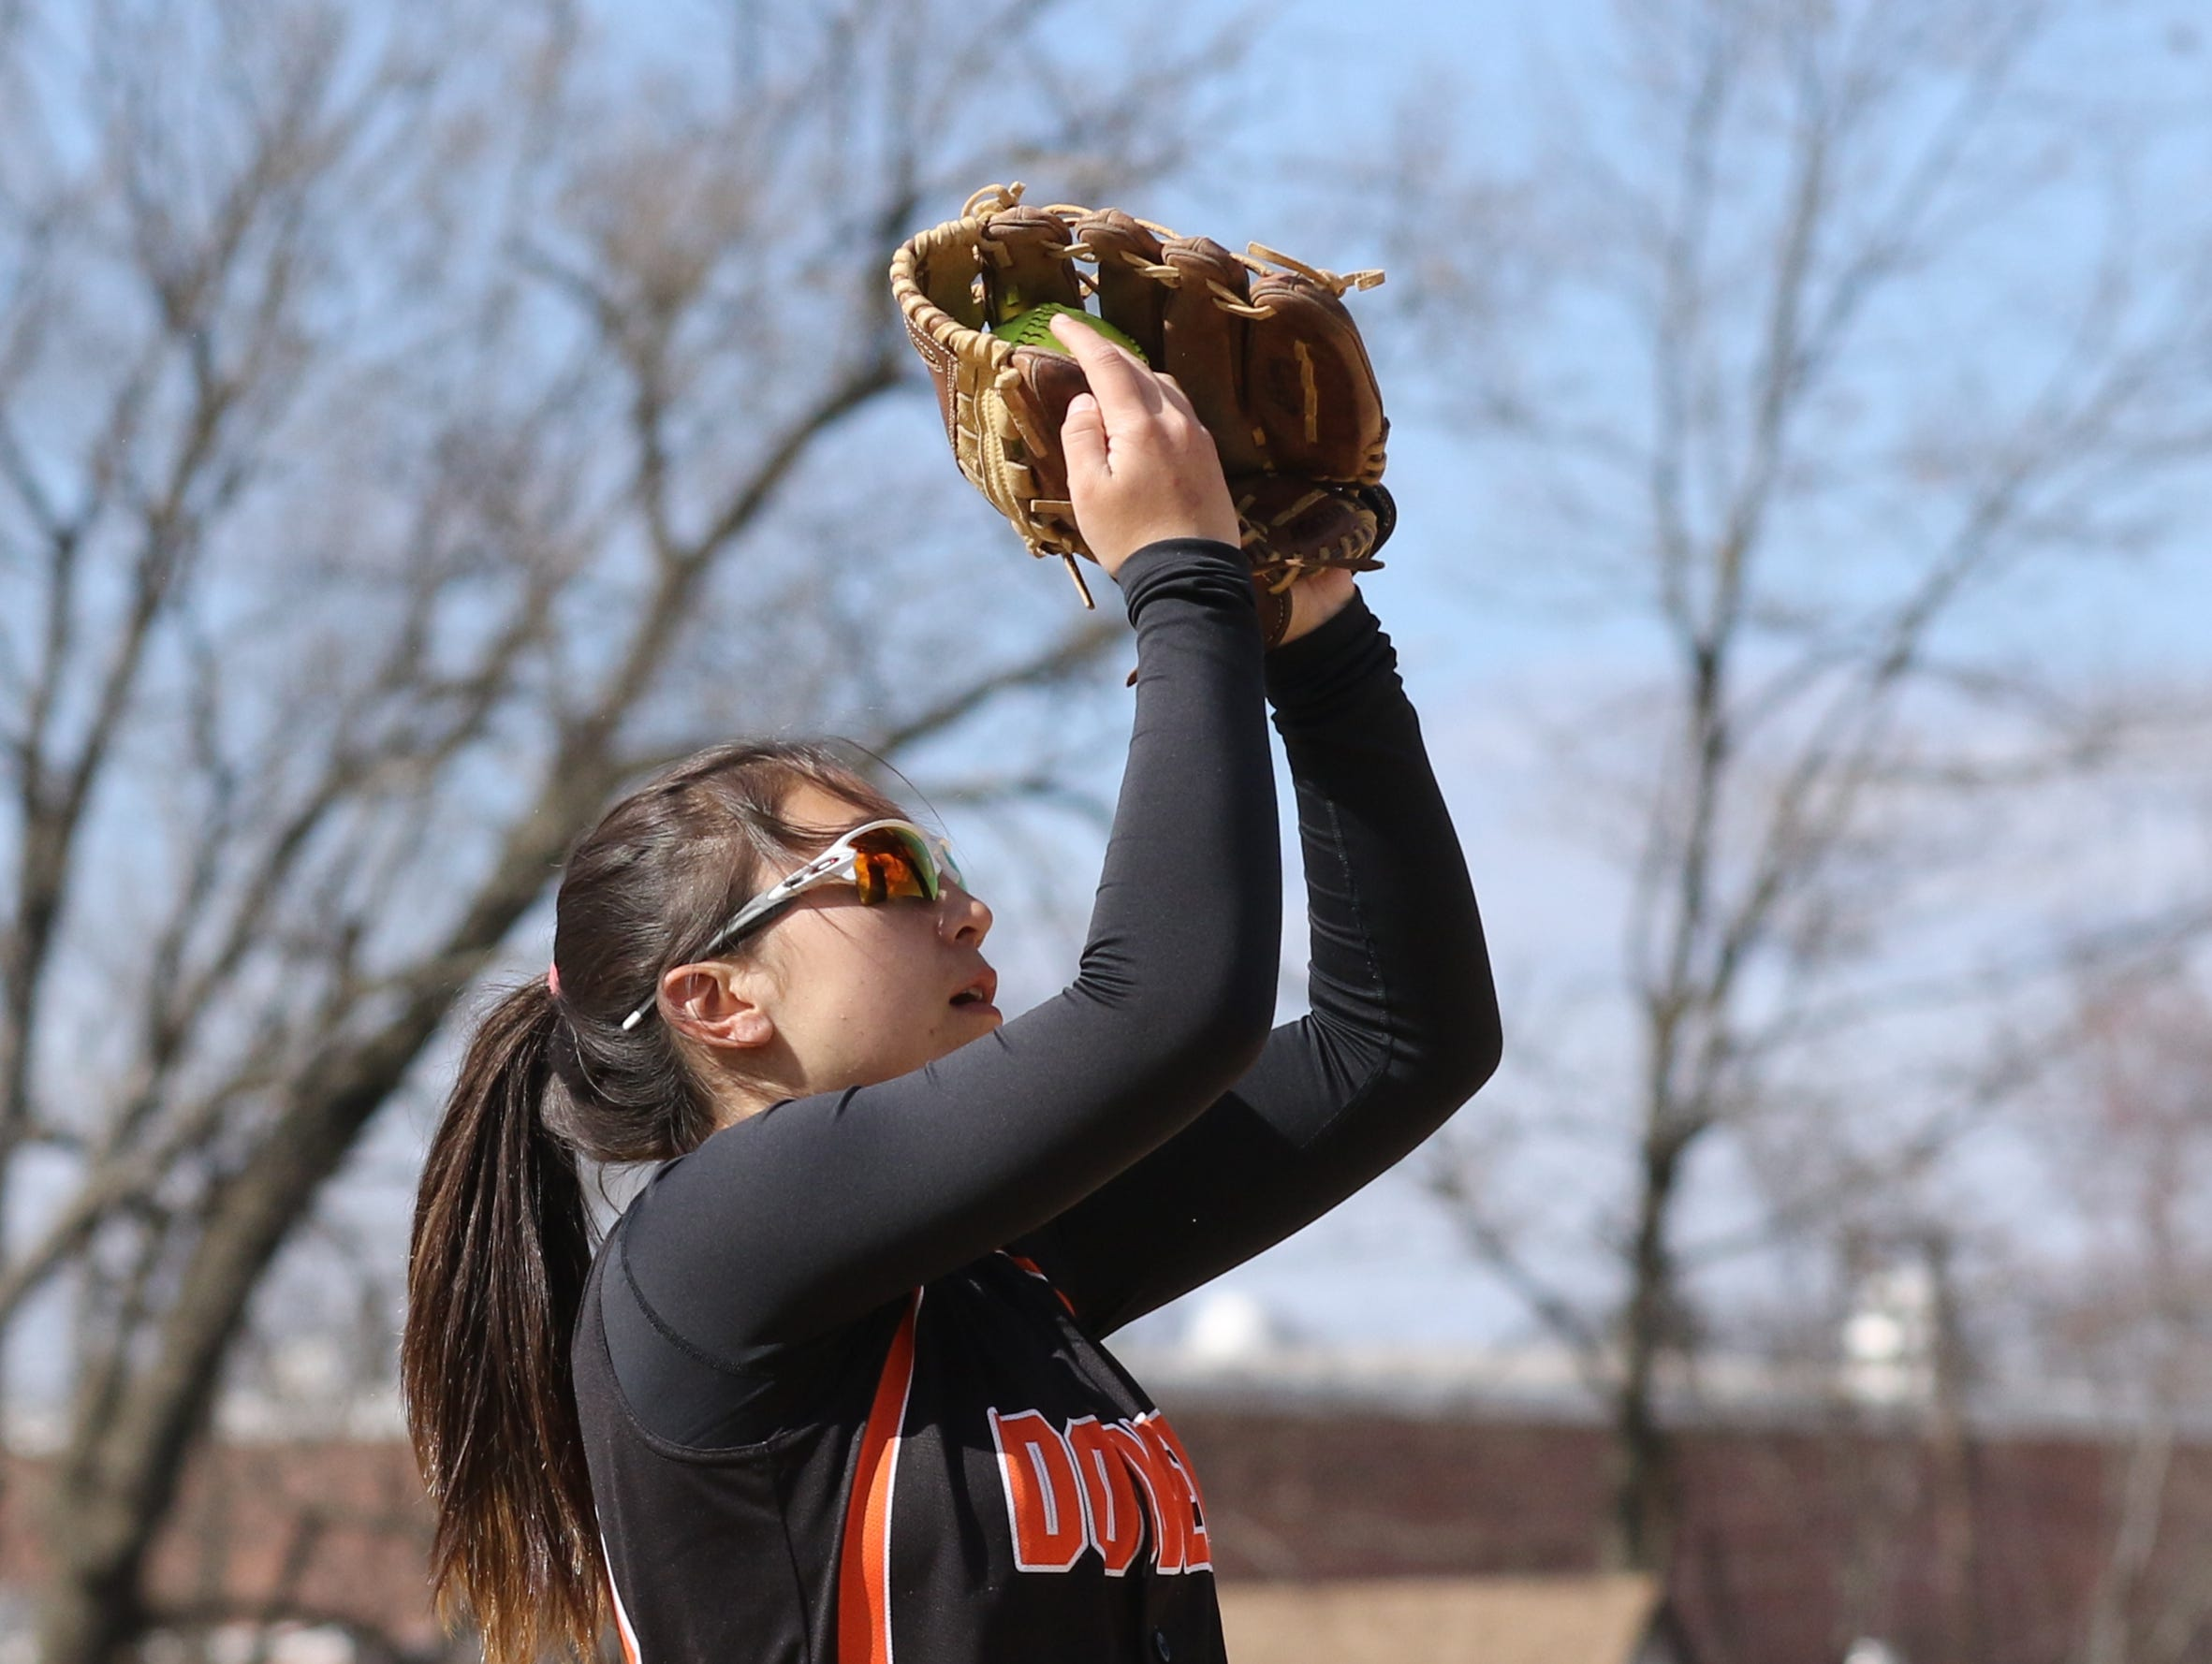 Dover senior Brianna Koo makes the play at shortstop to get the first out against Hackettstown Tuesday.